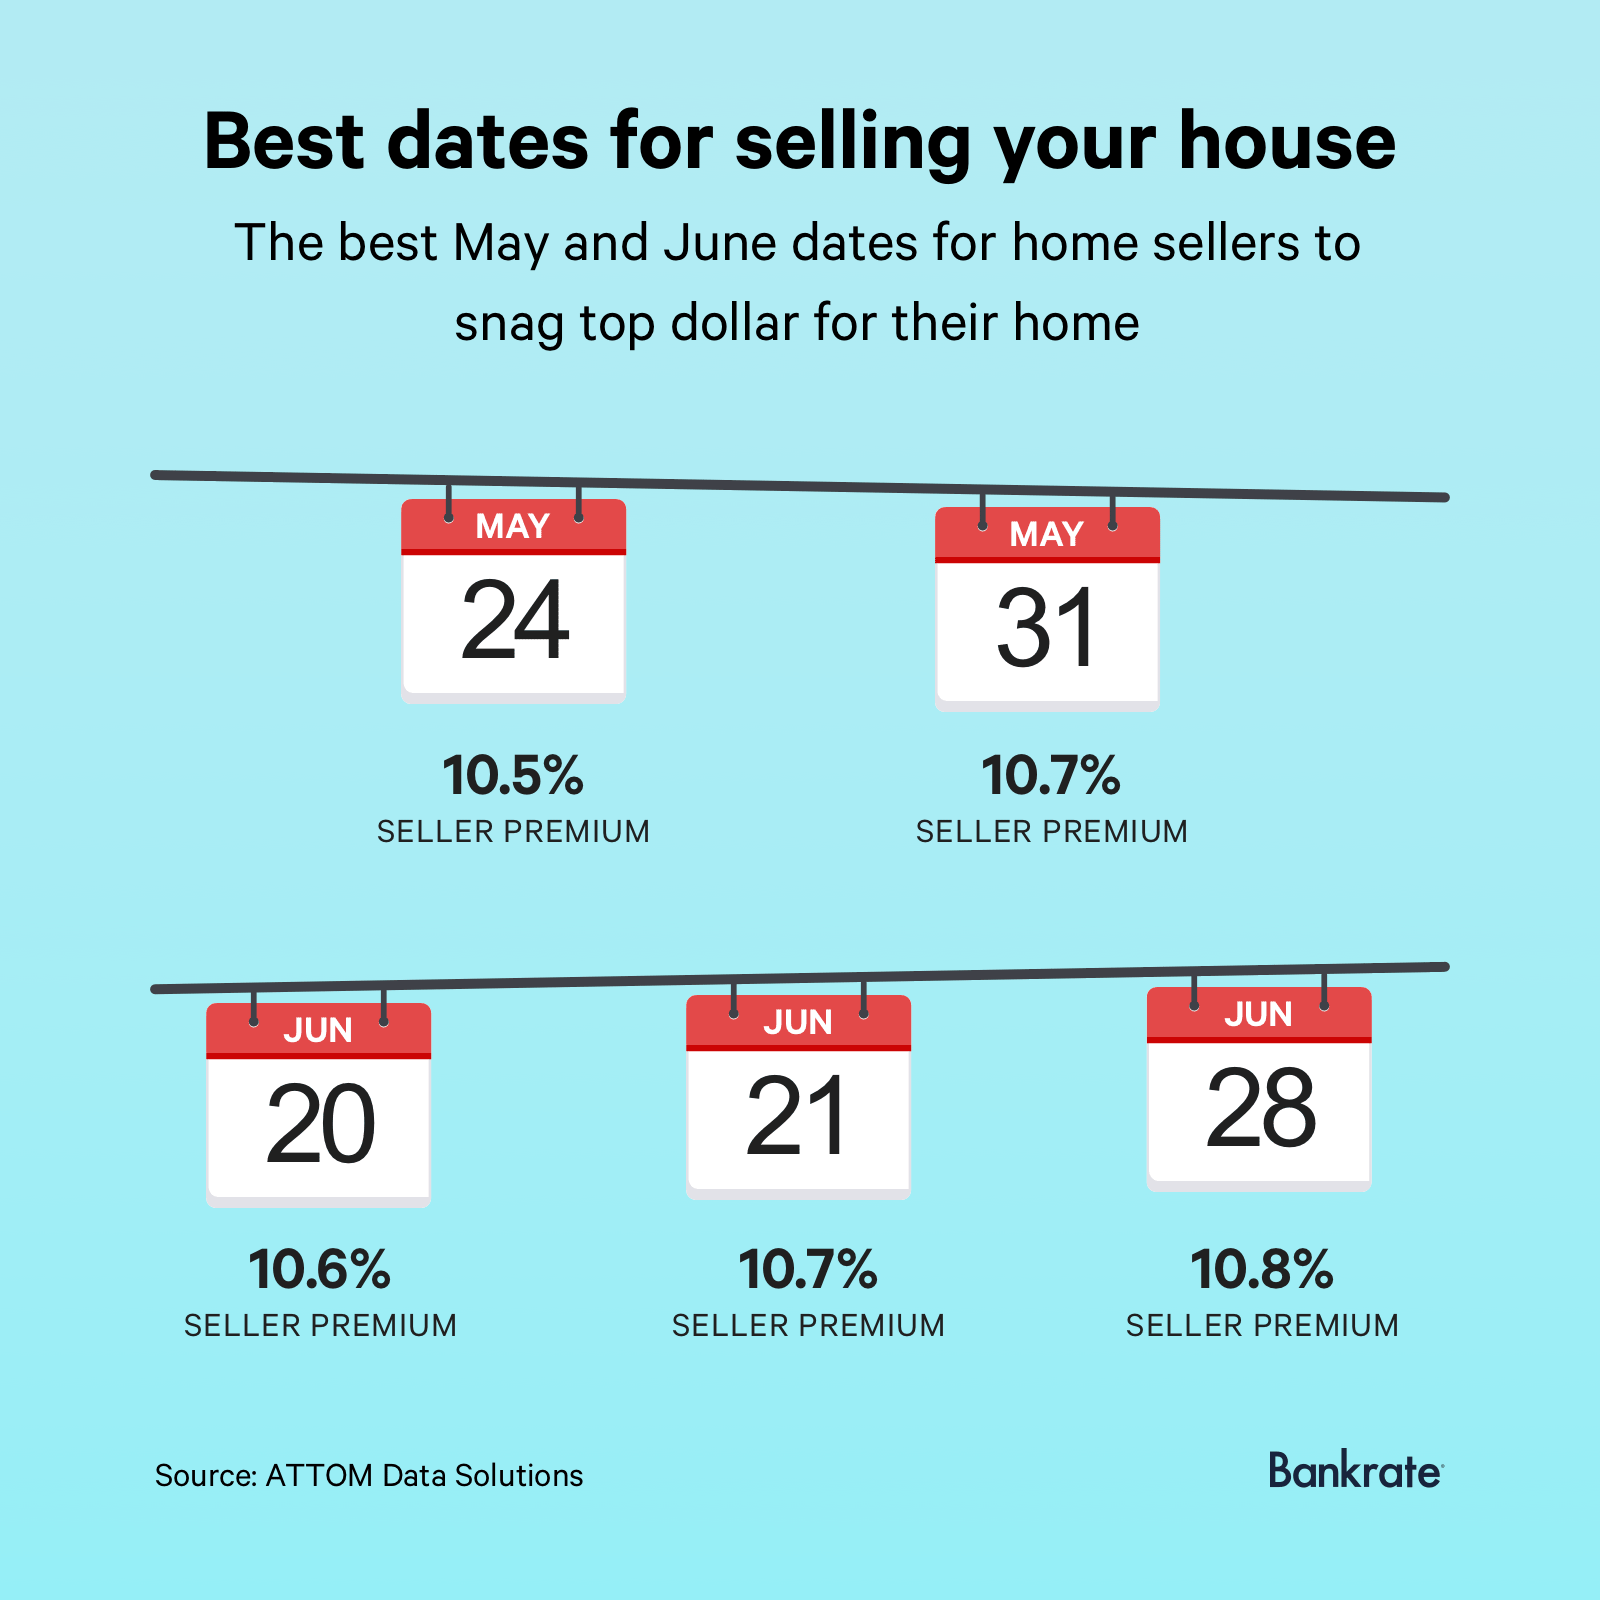 The best dates for home sellers to snag top dollar for their home